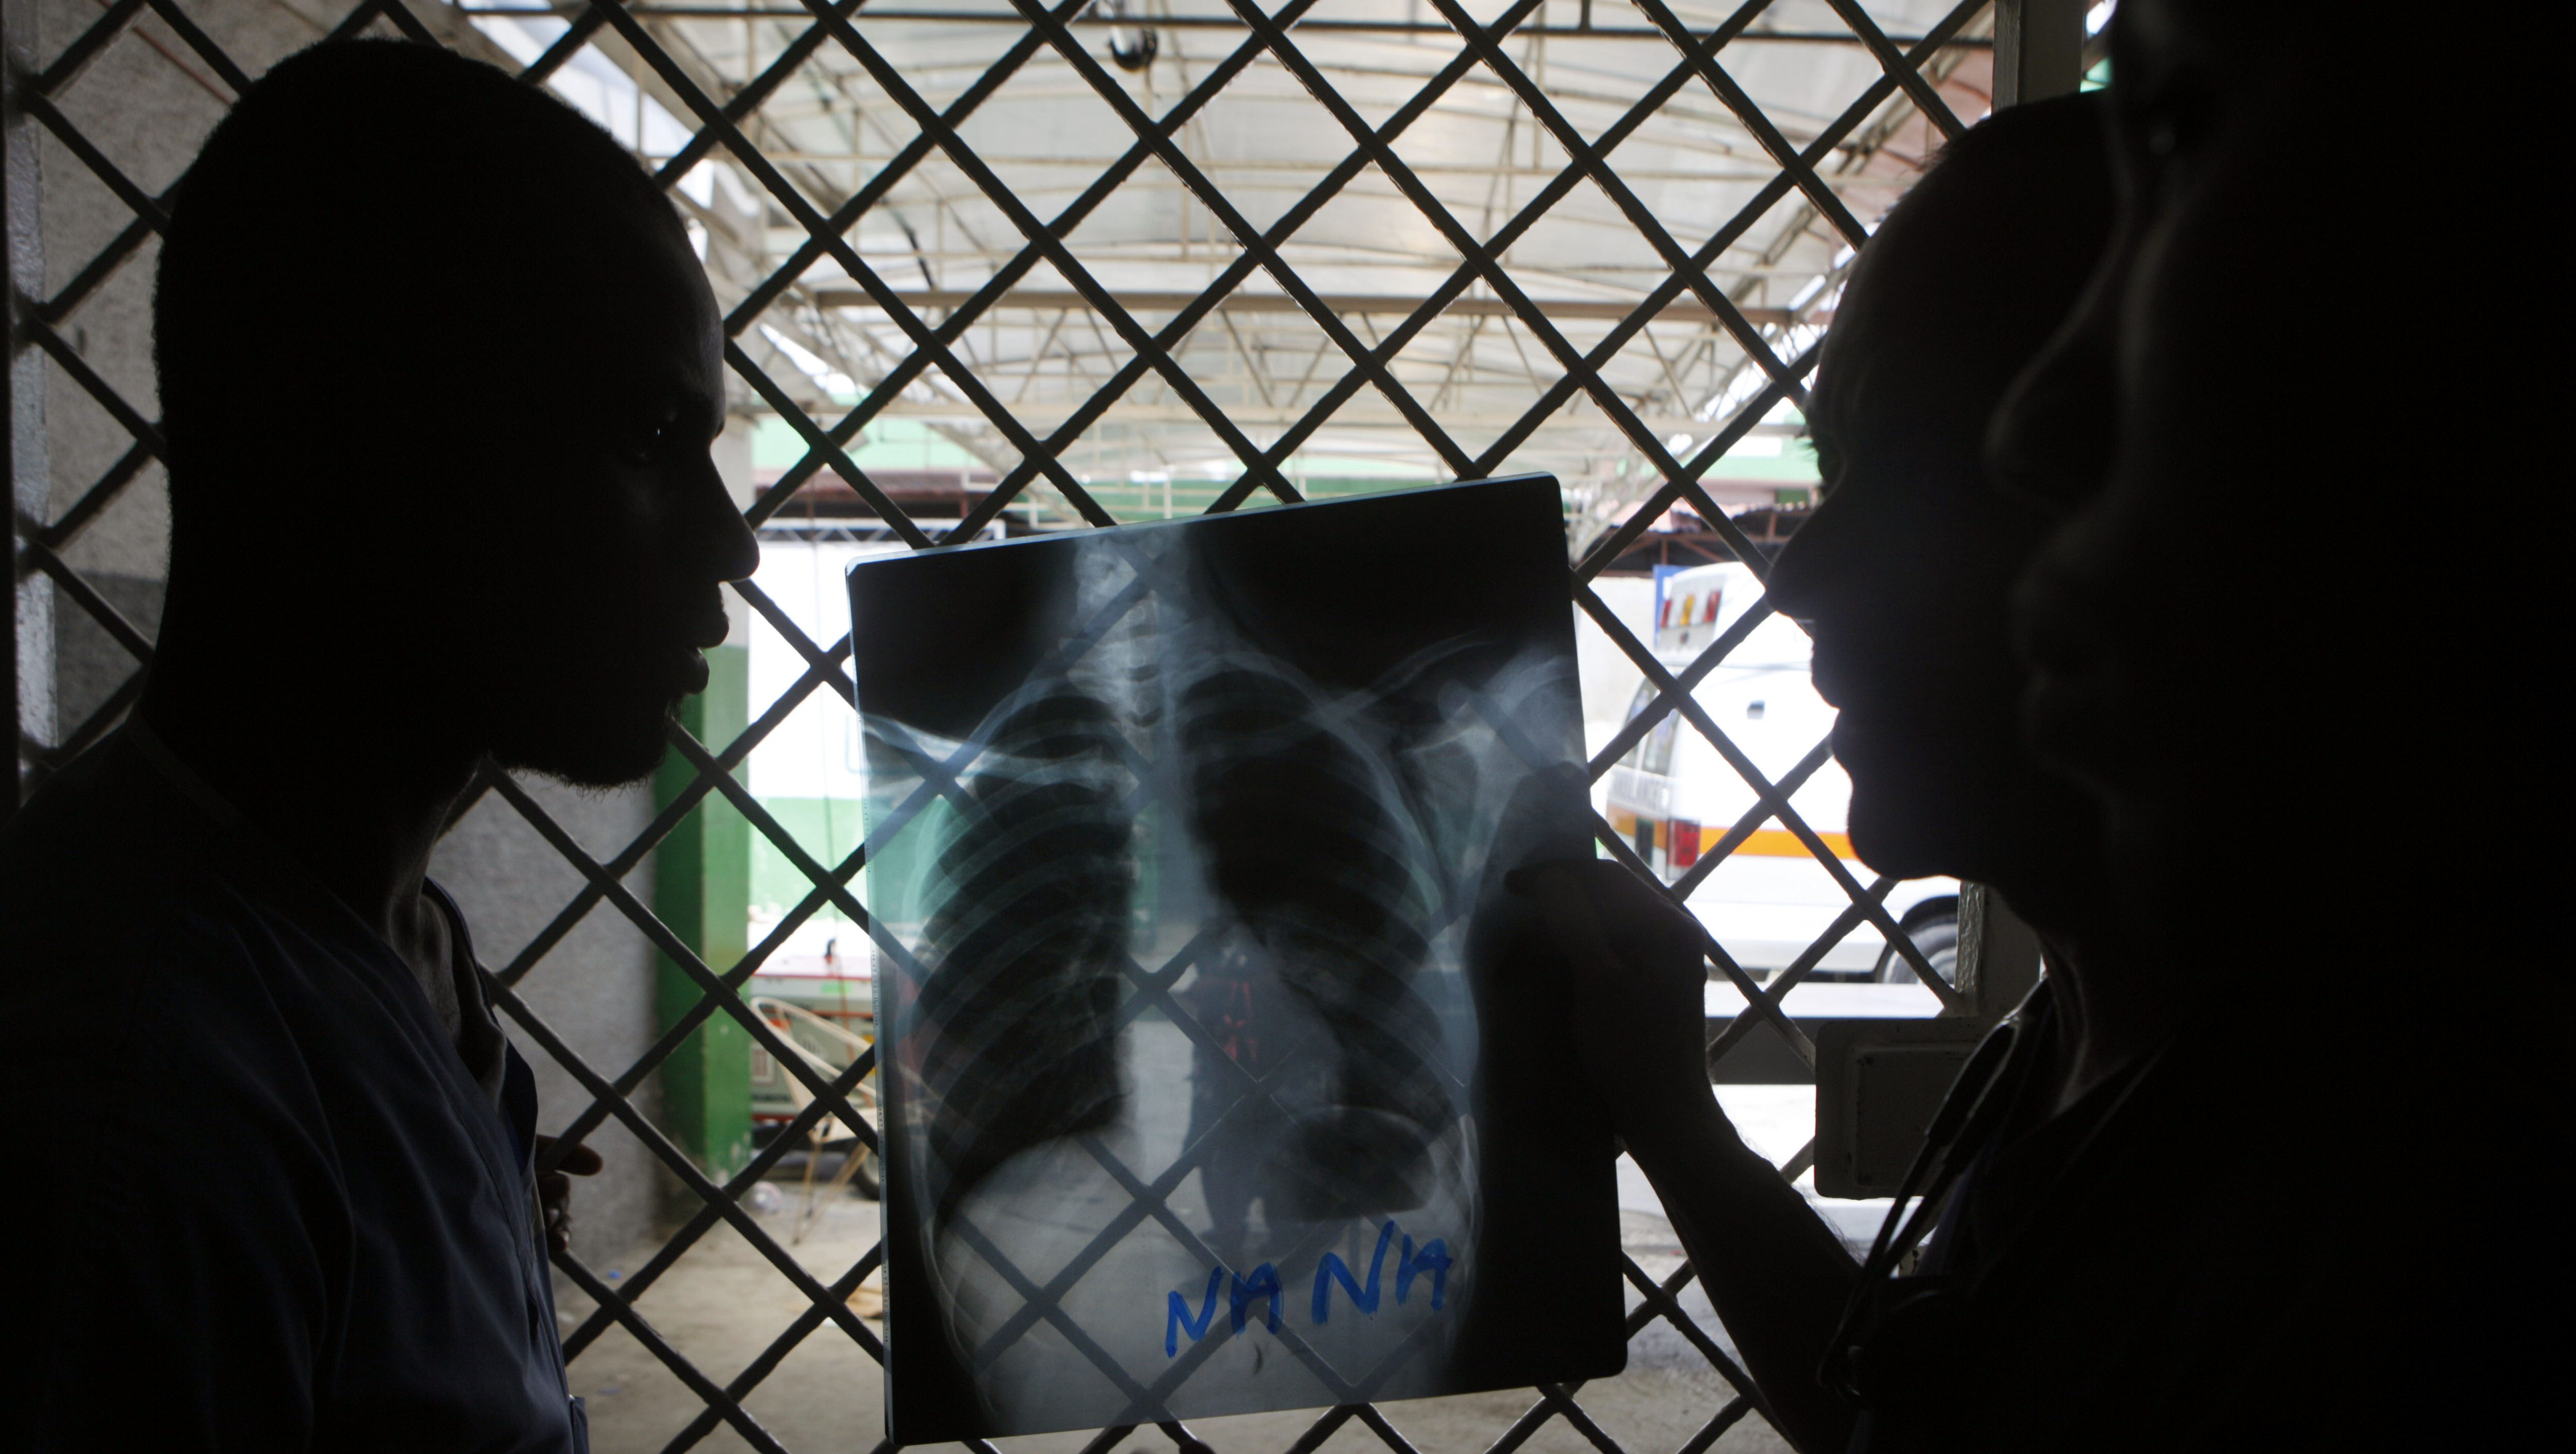 In this May 7, 2010 photo, doctors look at an X-ray using sunlight coming through a door's window in an emergency room at the General Hospital of Port-au-Prince.  From cracked hospitals to tent-camp clinics, aid groups are working furiously to treat patients amid failing generators and disappearing supplies while simultaneously struggling to build institutions from the rubble. (AP Photo/Esteban Felix)